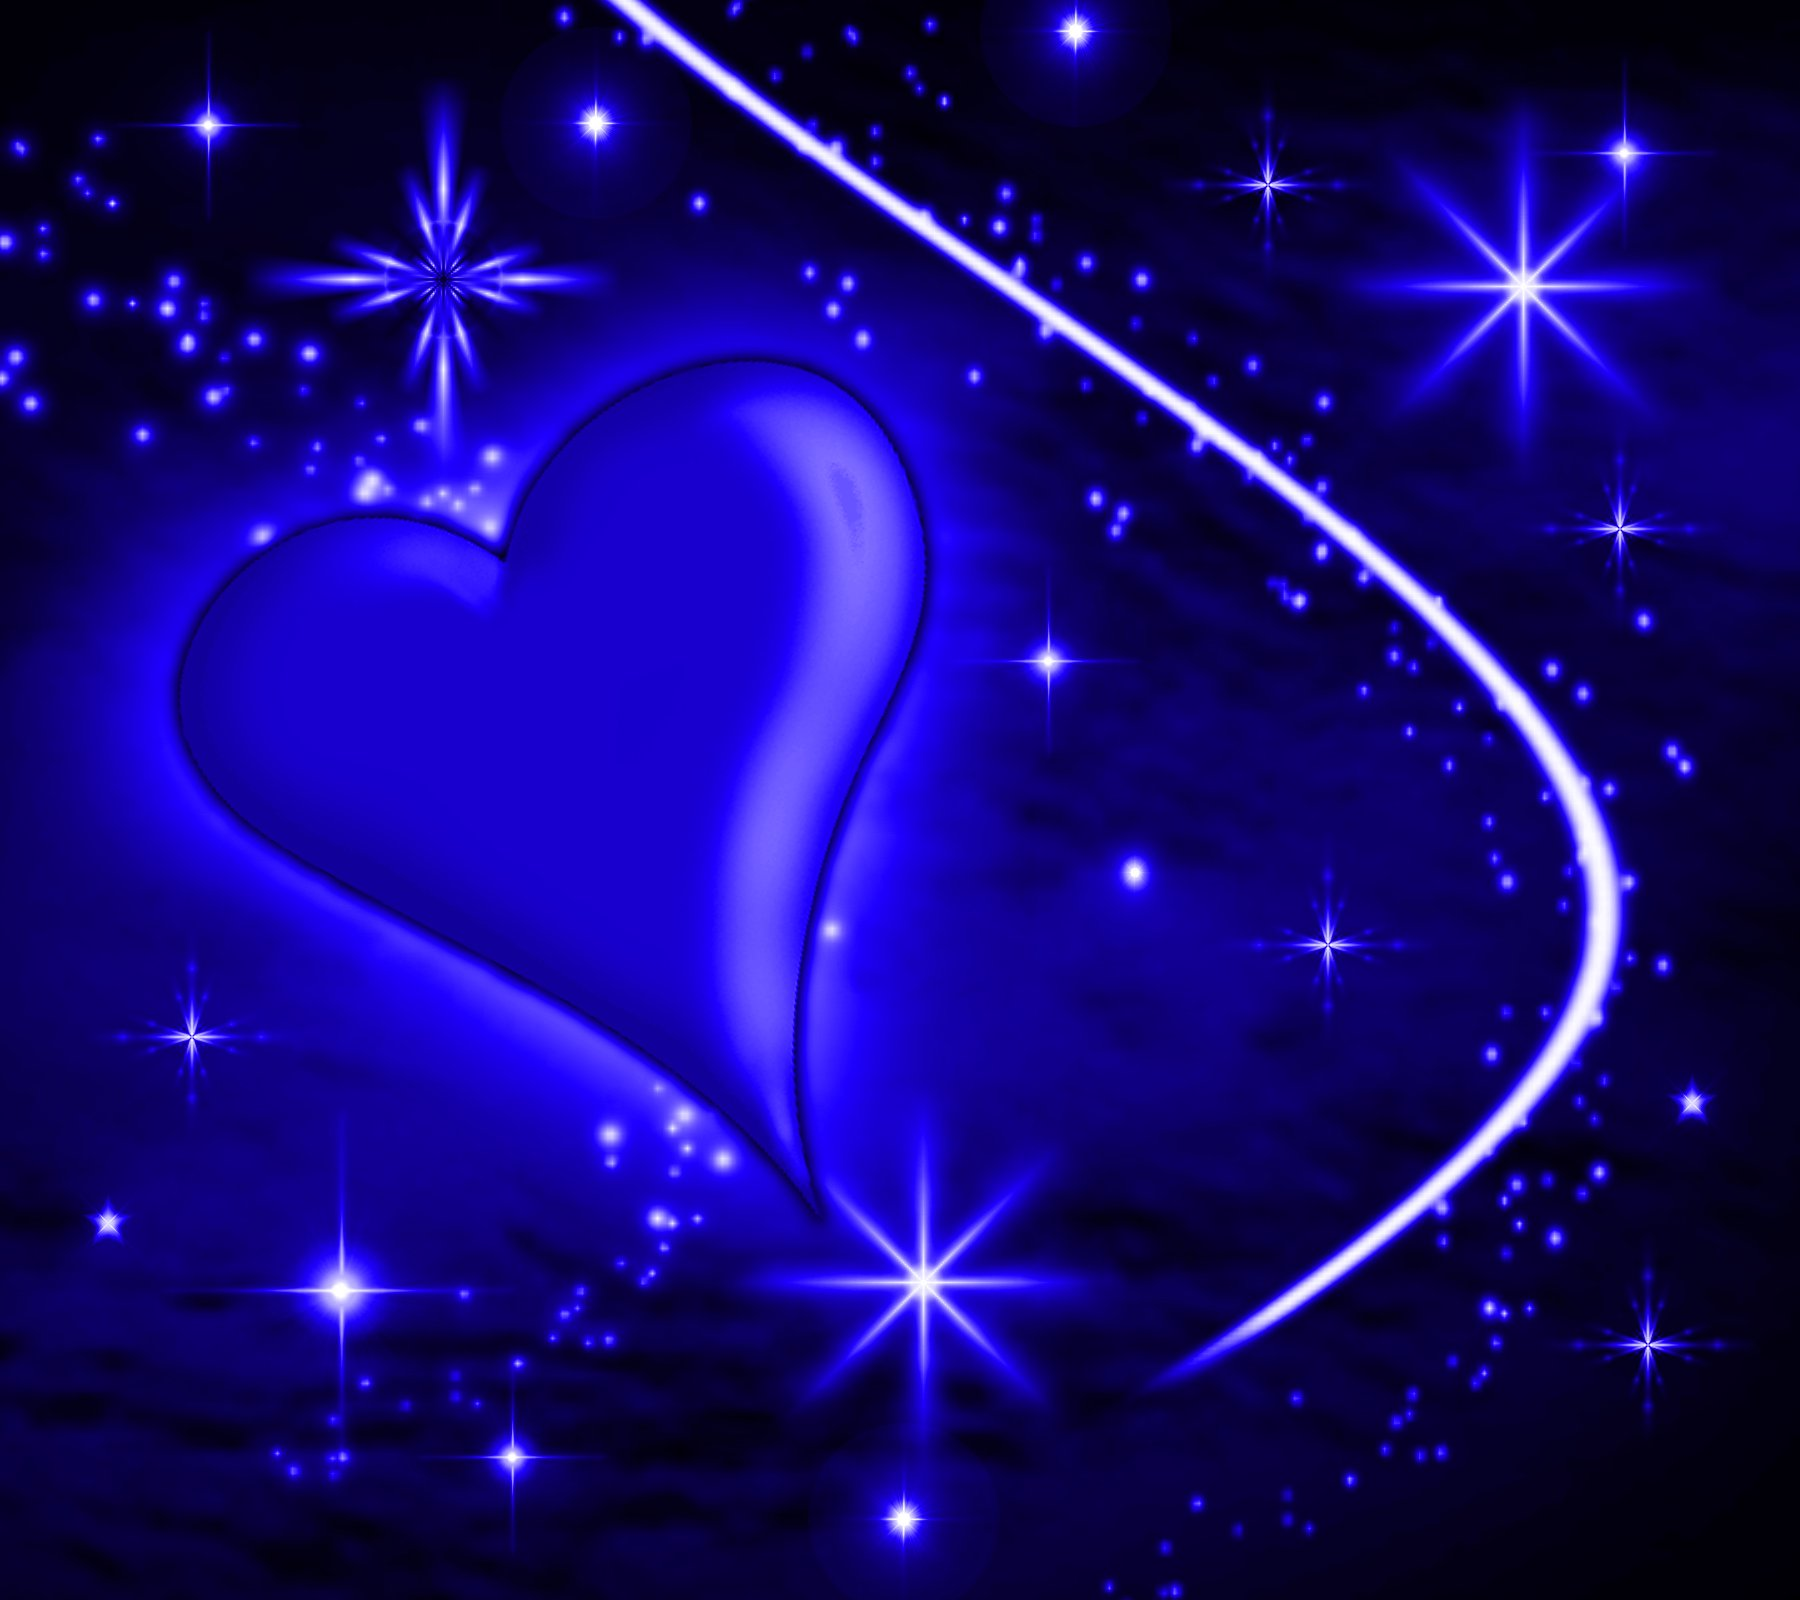 Blue Heart With Plasma Stars Background 1800x1600 Image